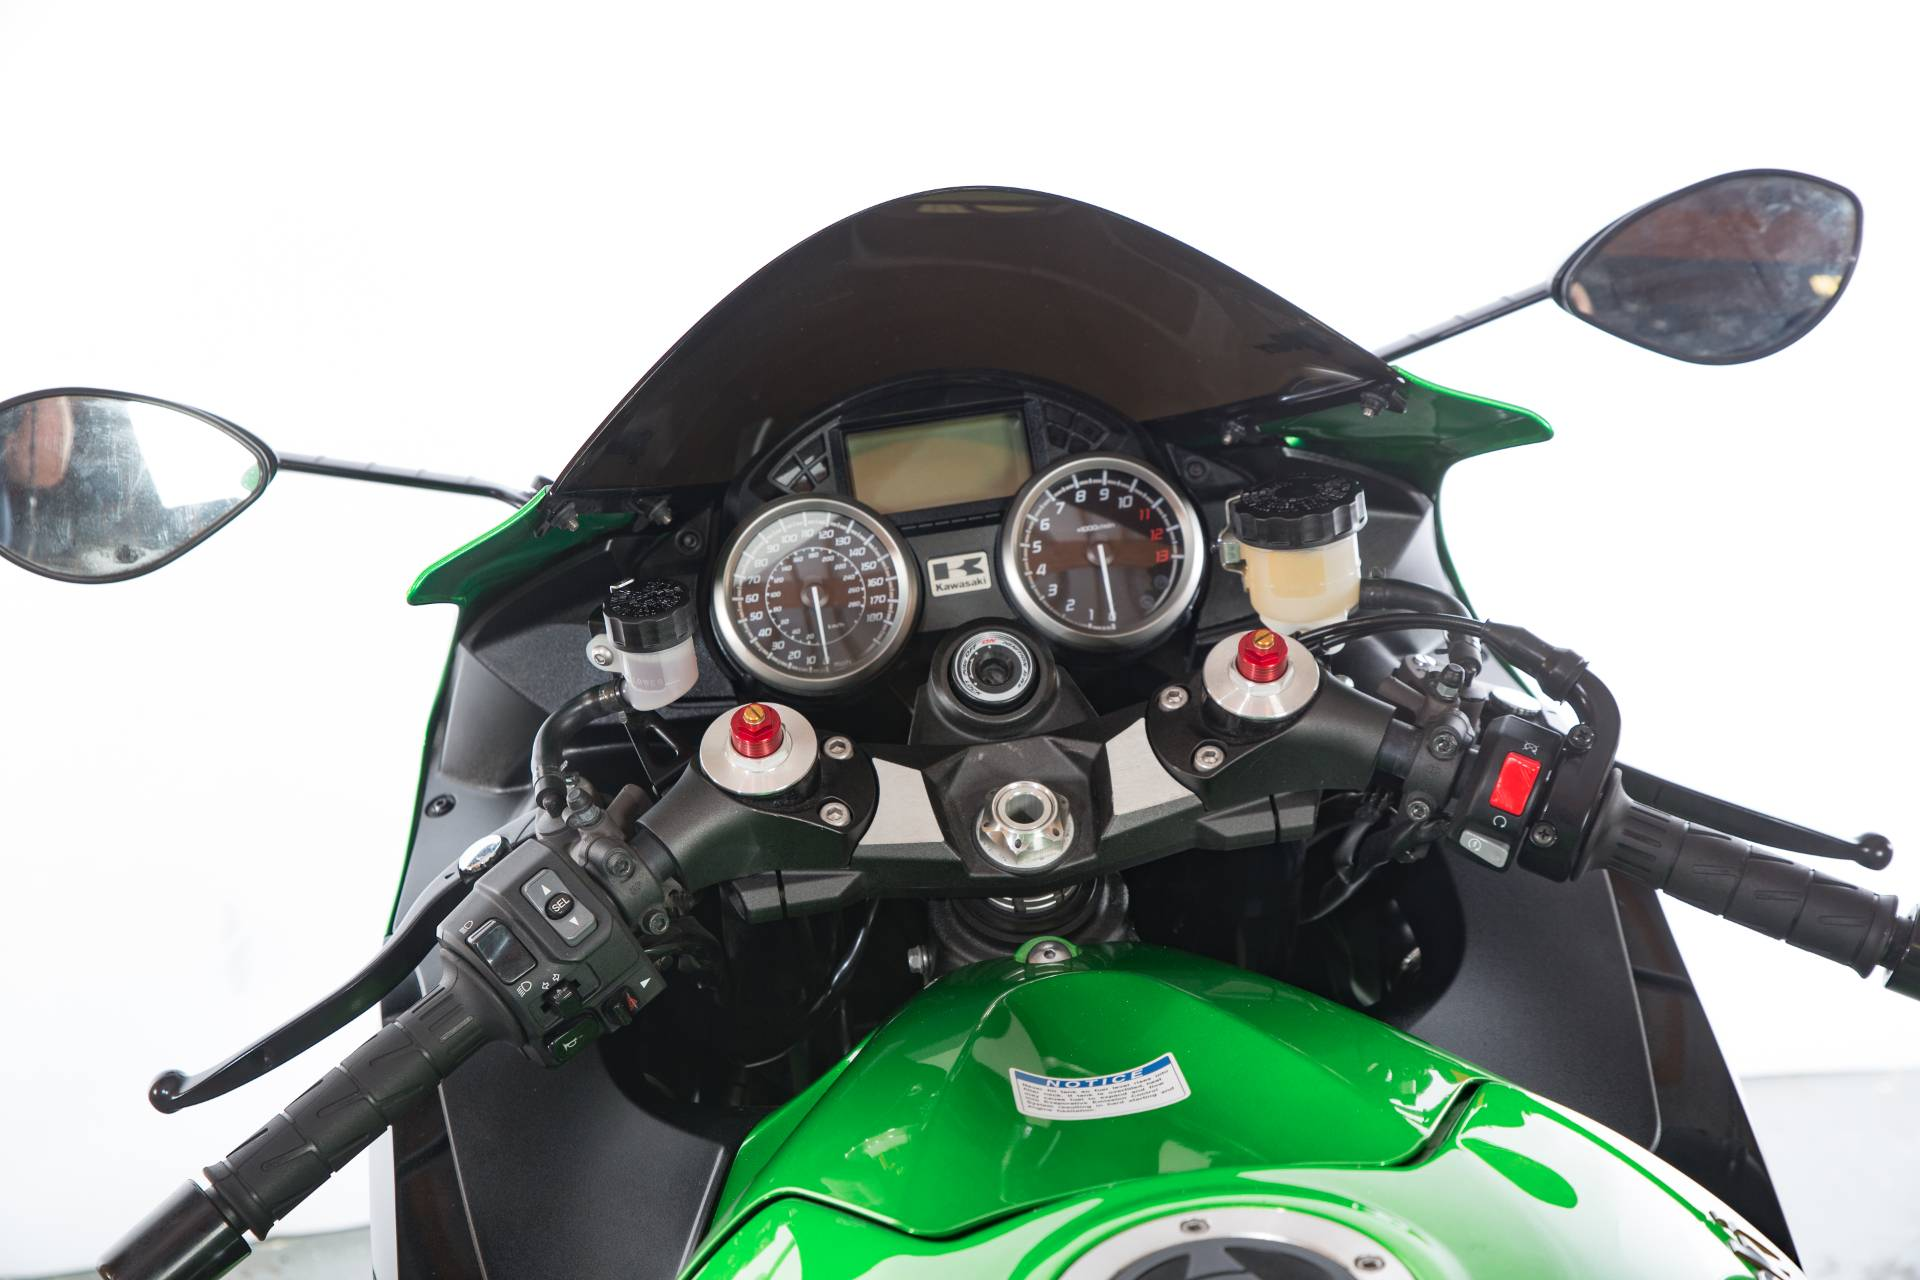 2014 Kawasaki ZX14 in Lexington, North Carolina